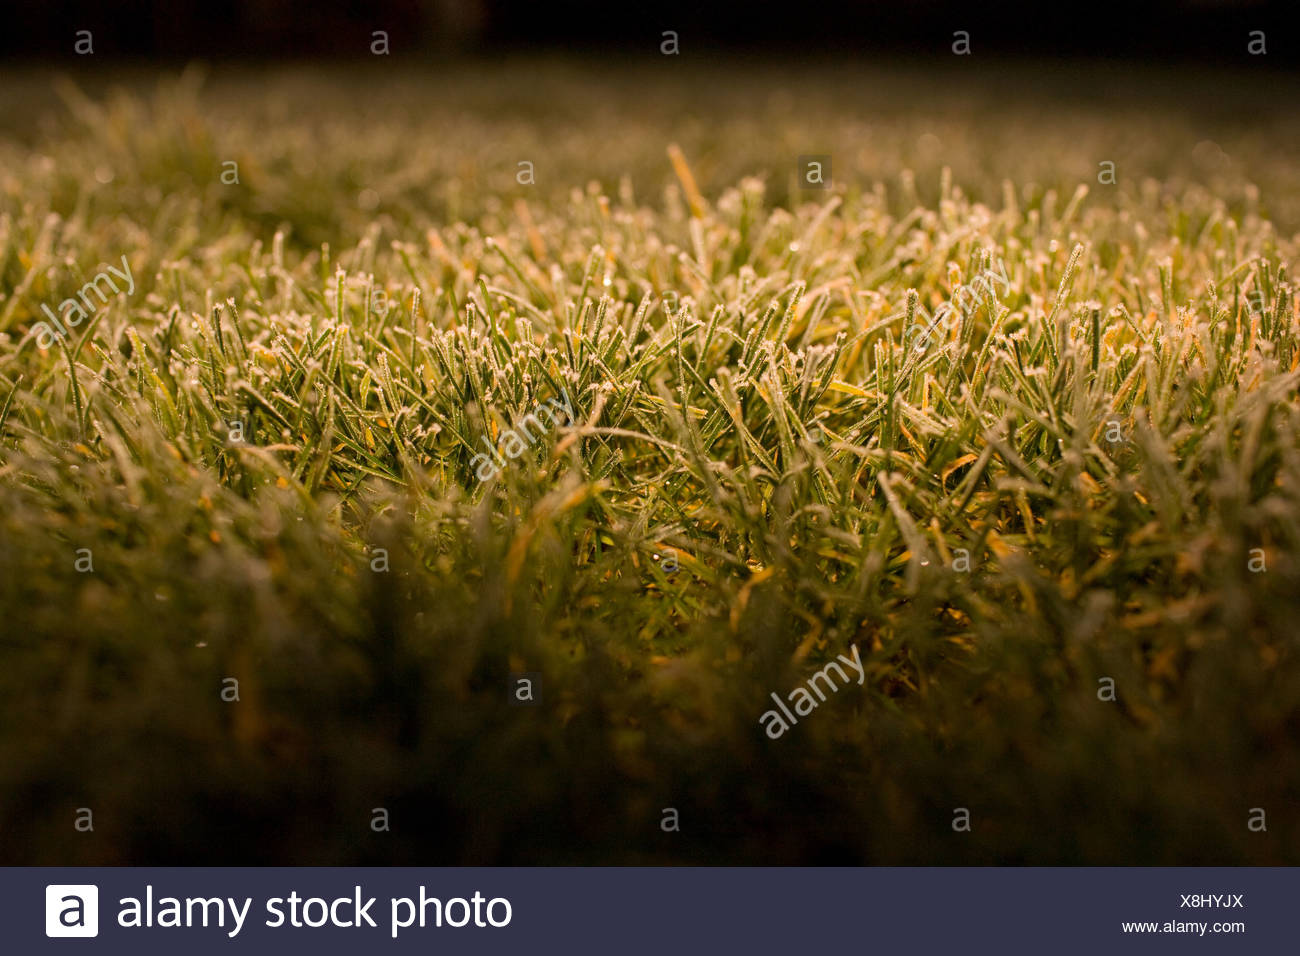 Frost on grass, close up - Stock Image